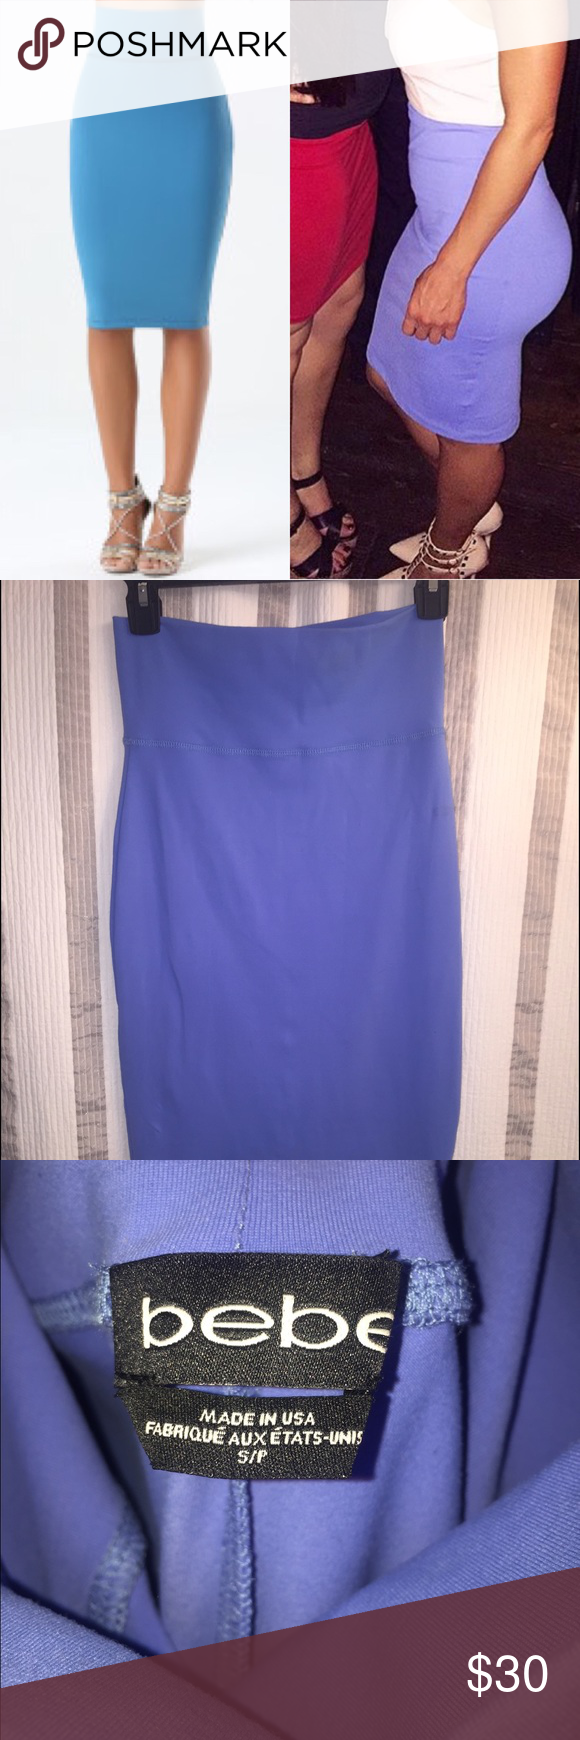 Bebe knit midi skirt. Size small Bebe knit midi skirt. The blue in my photos is more accurate of the natural color. The material is a really great quality. Only wore this once. Gorgeous color for summer. Retails in stores now for $69. +tax. bebe Skirts Midi